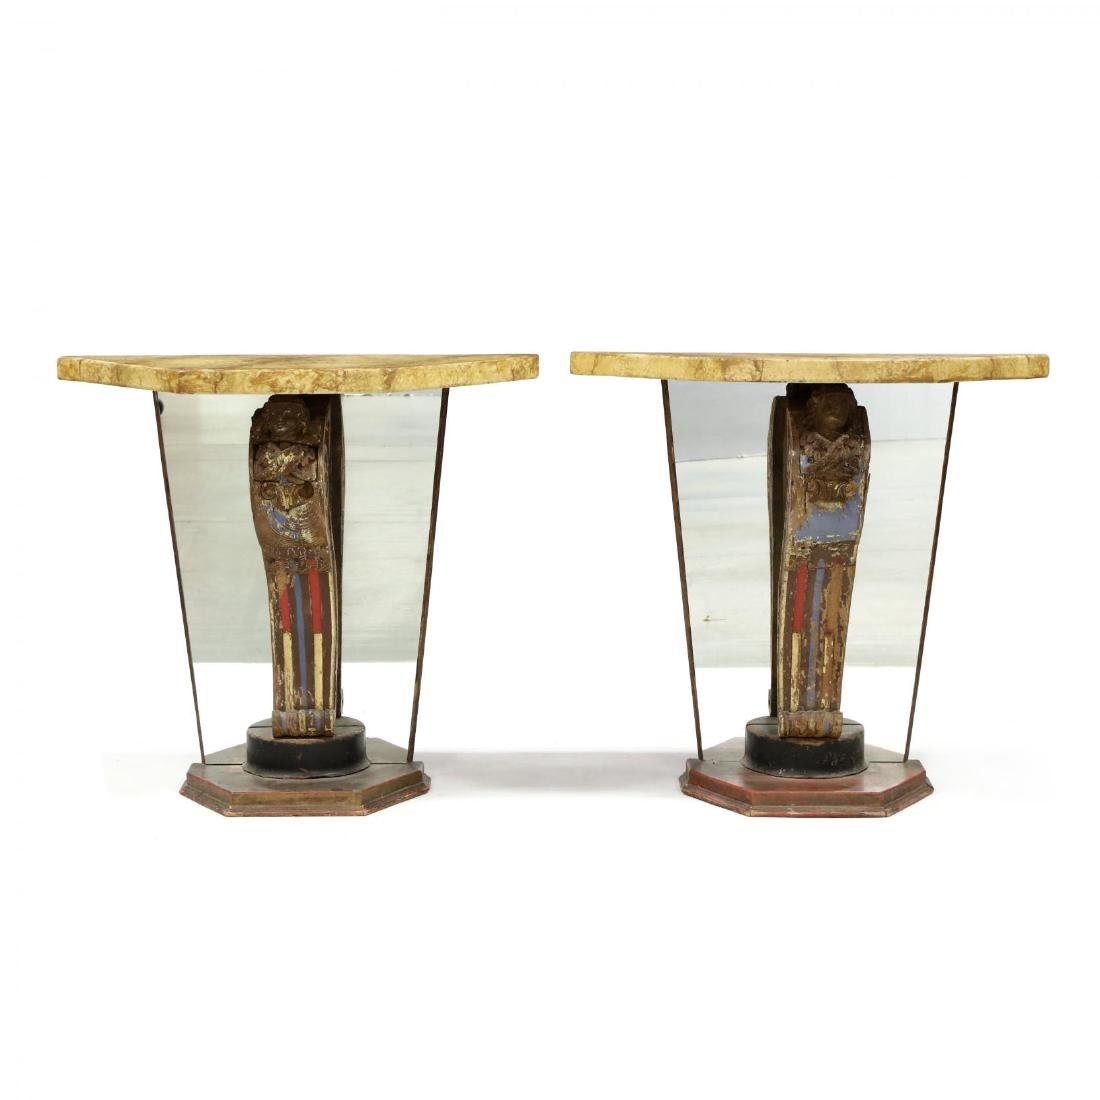 Pair of Vintage Continental Carved and Mirrored Console